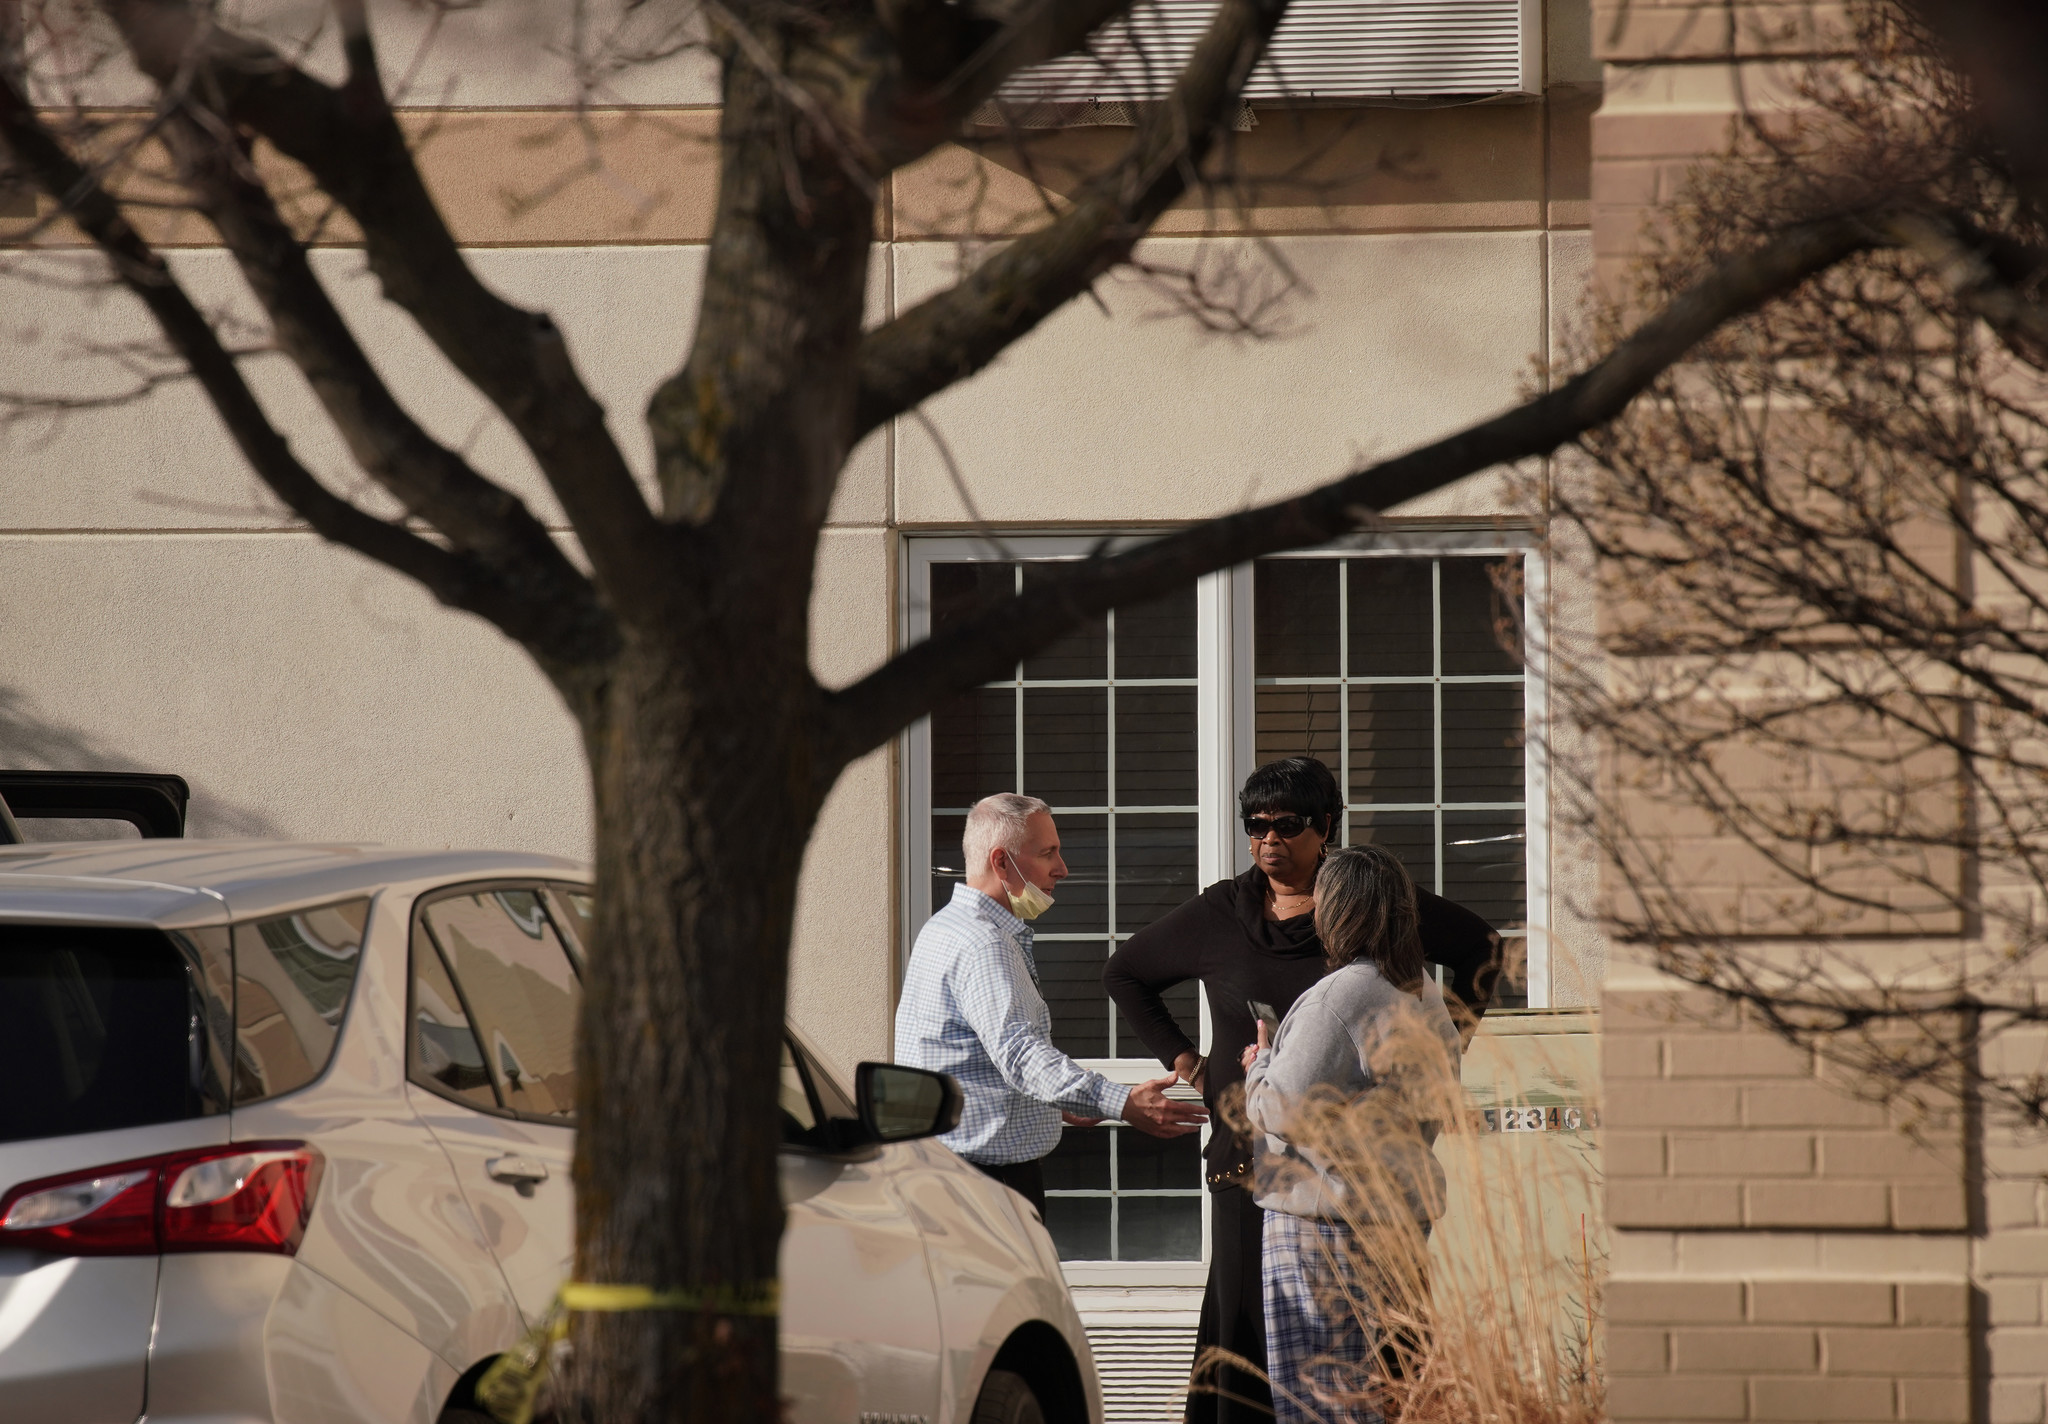 Officials report 46 people from DuPage nursing home have tested positive for coronavirus as Illinois cases spike to 288